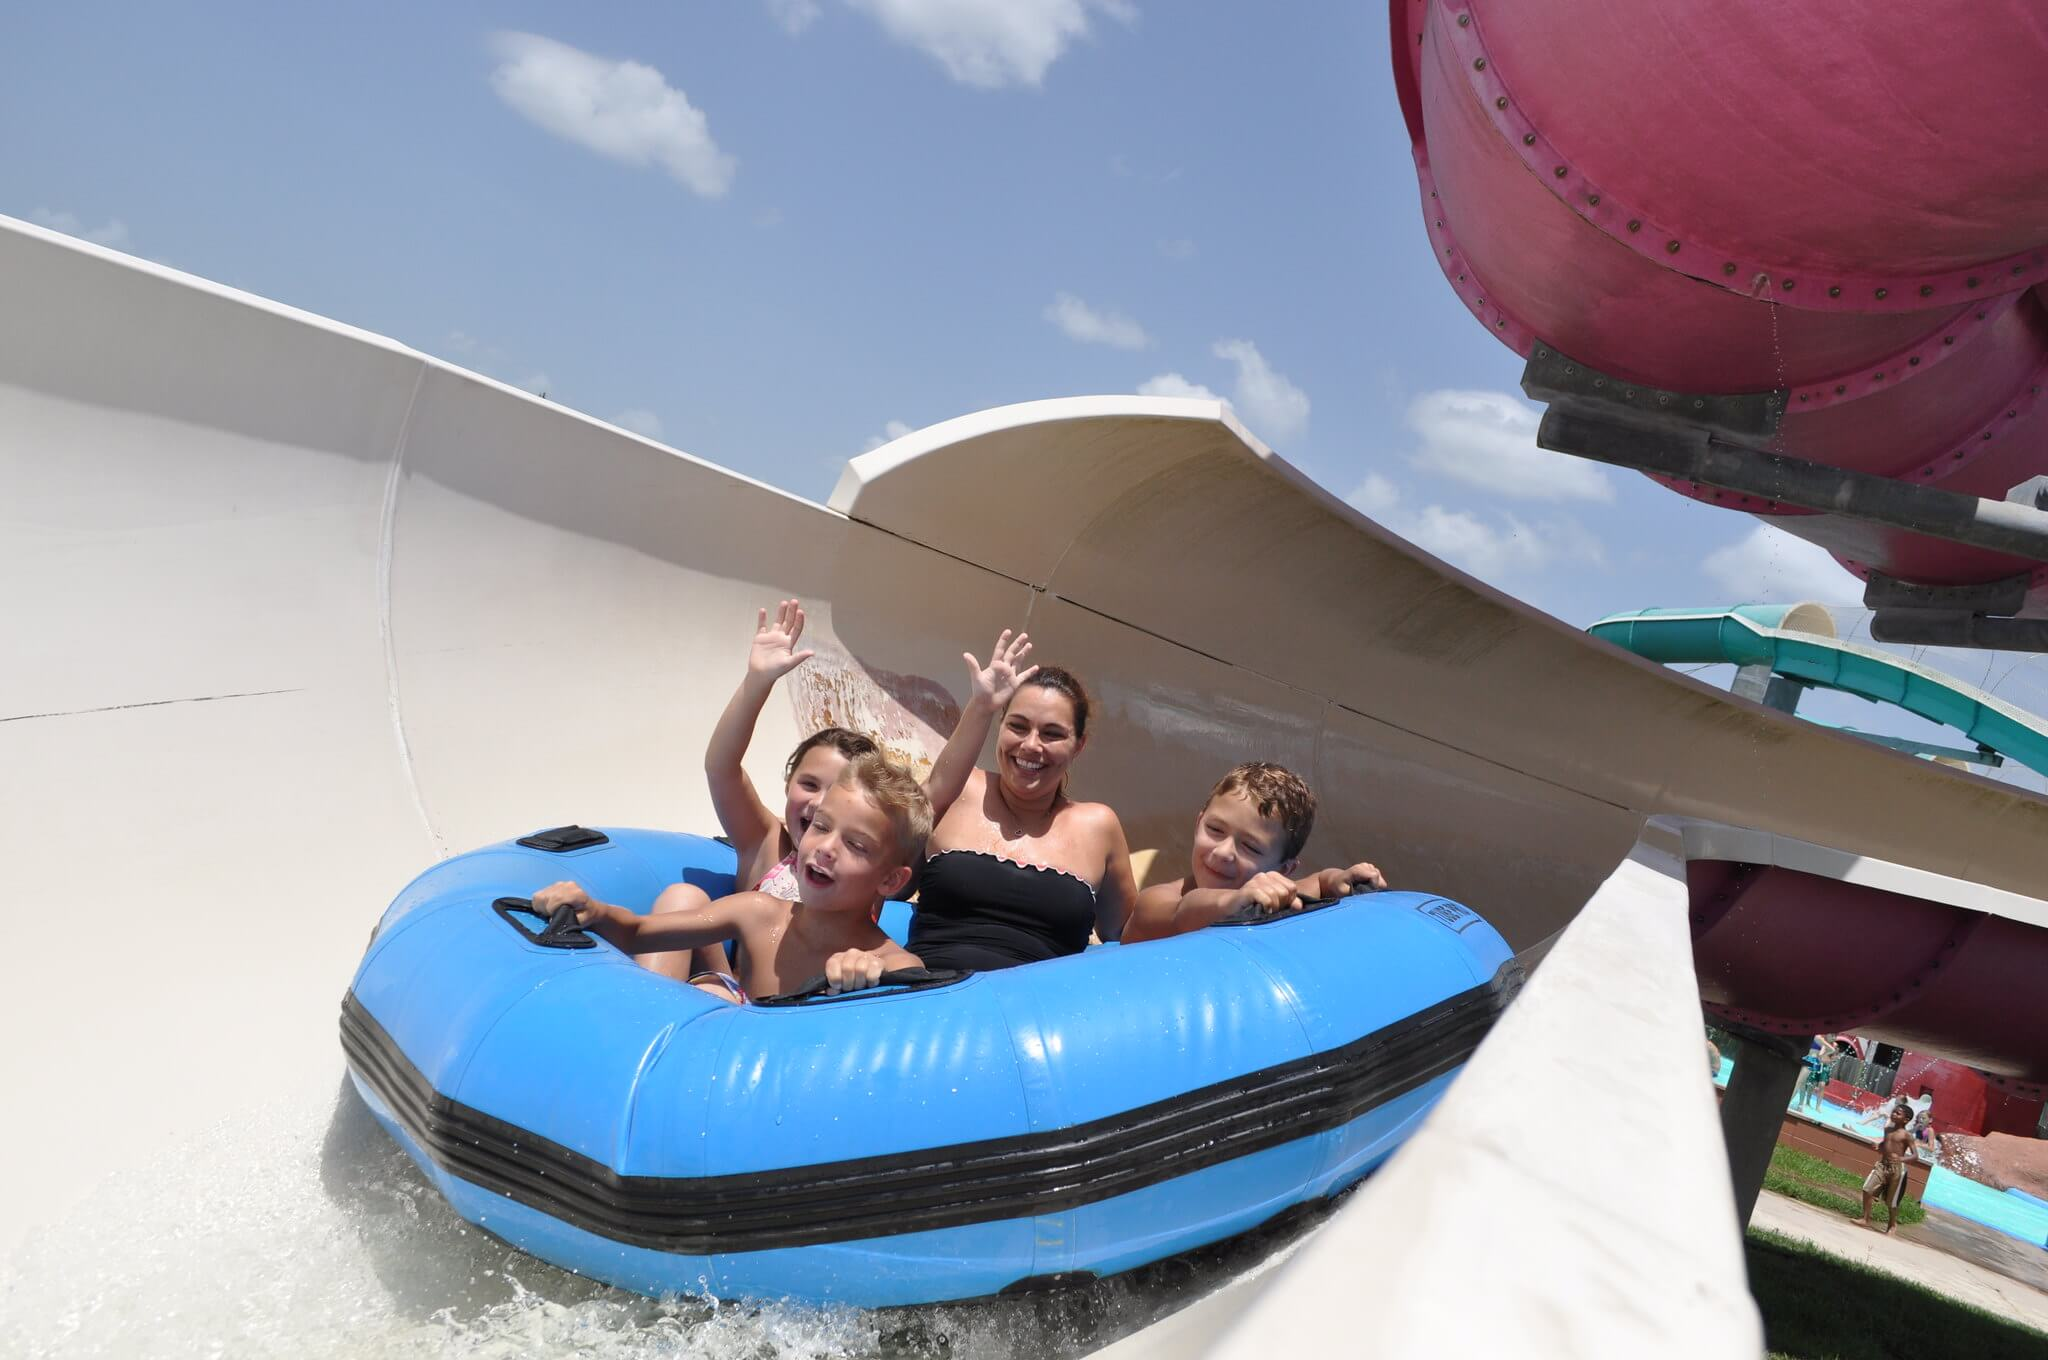 group of people in a tube going down a slide